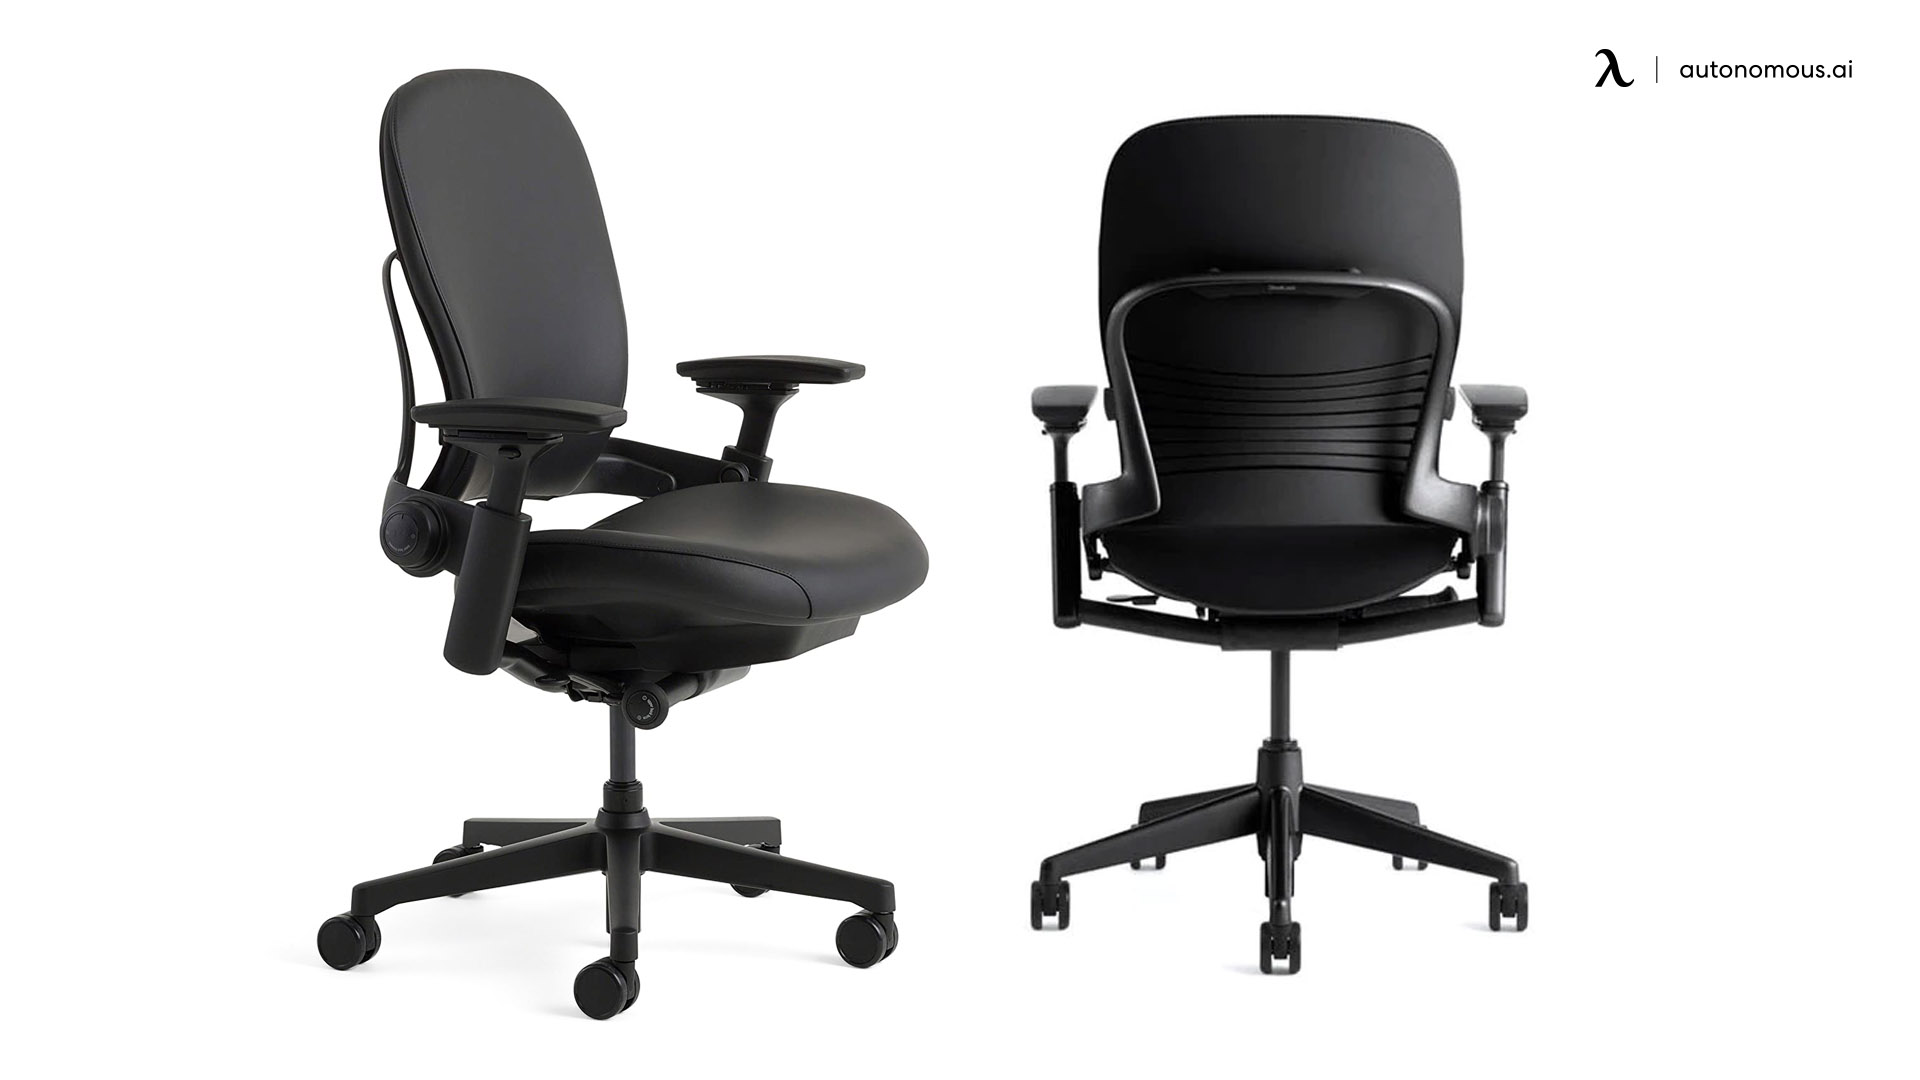 The Steelcase Leap